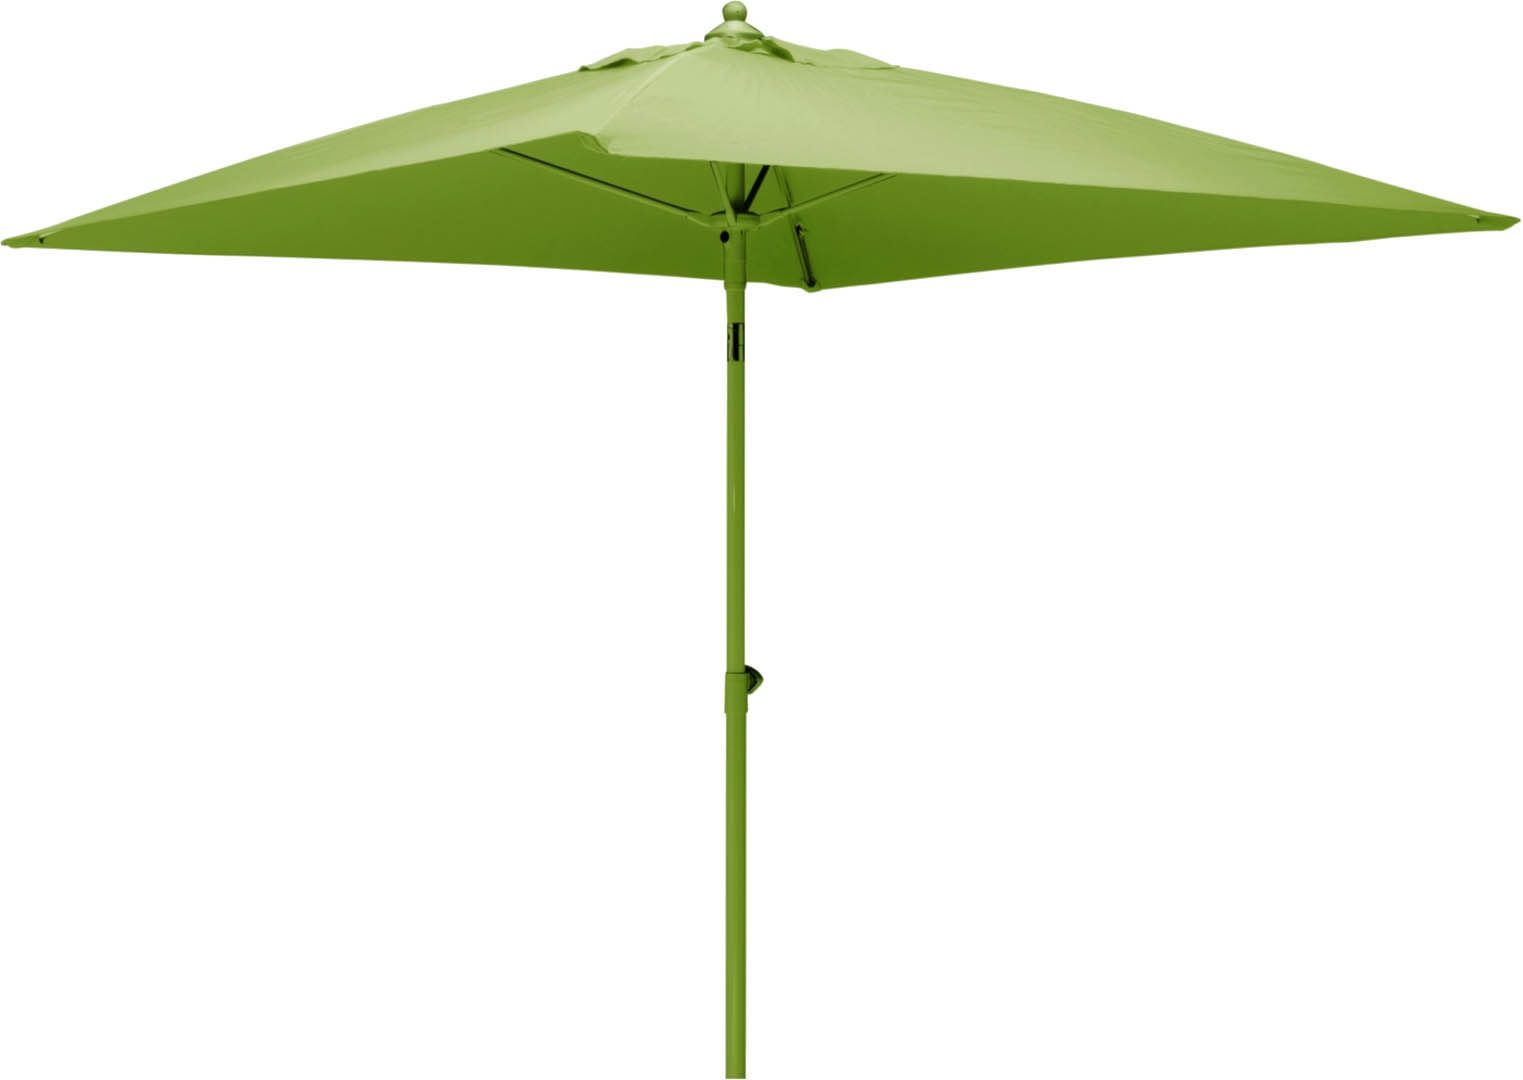 Parasol cheap parasol with parasol parasol with parasol for Parasol rectangulaire inclinable castorama